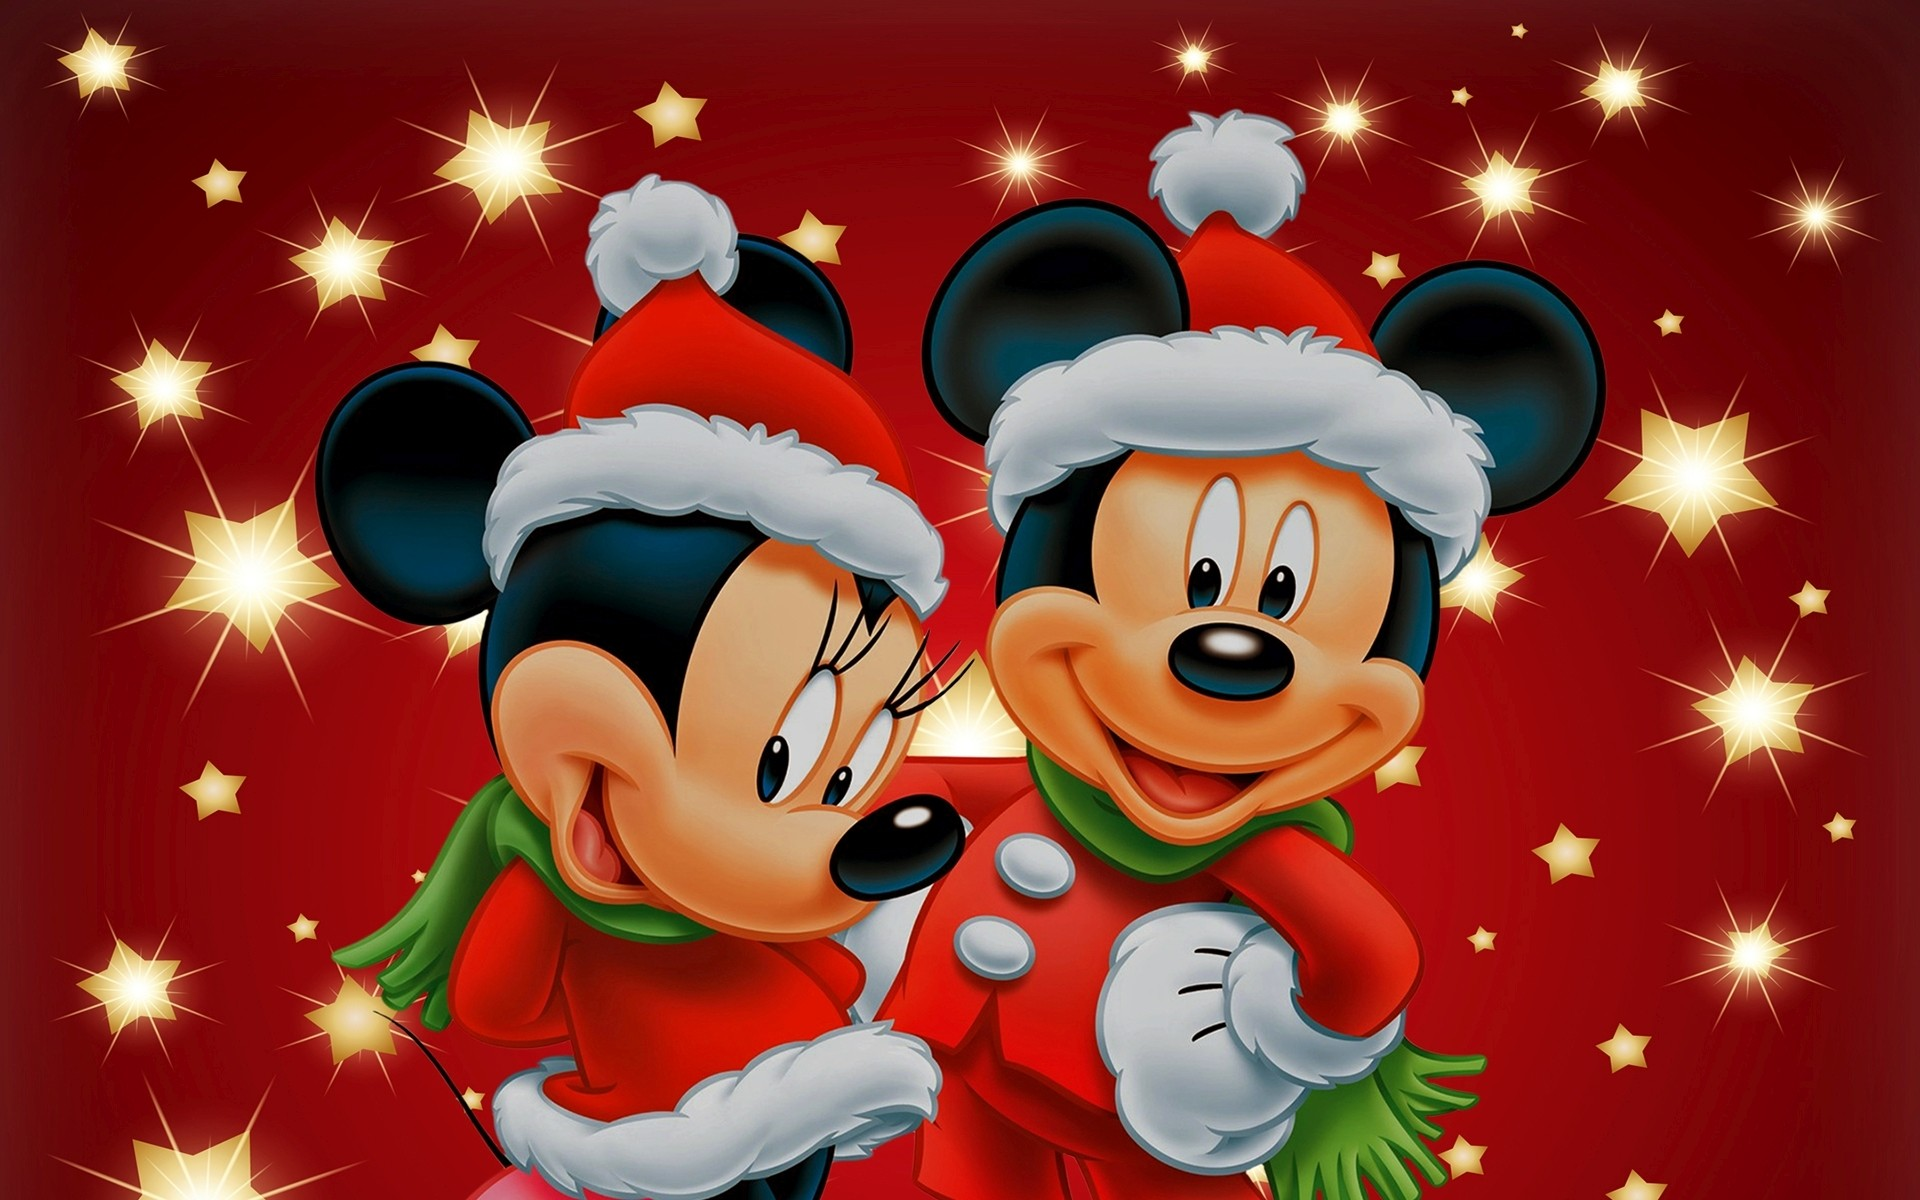 Uncategorized Mickey Mouse Christmas Wallpaper mickey and minnie mouse wallpaper 64 images 1920x1200 30344